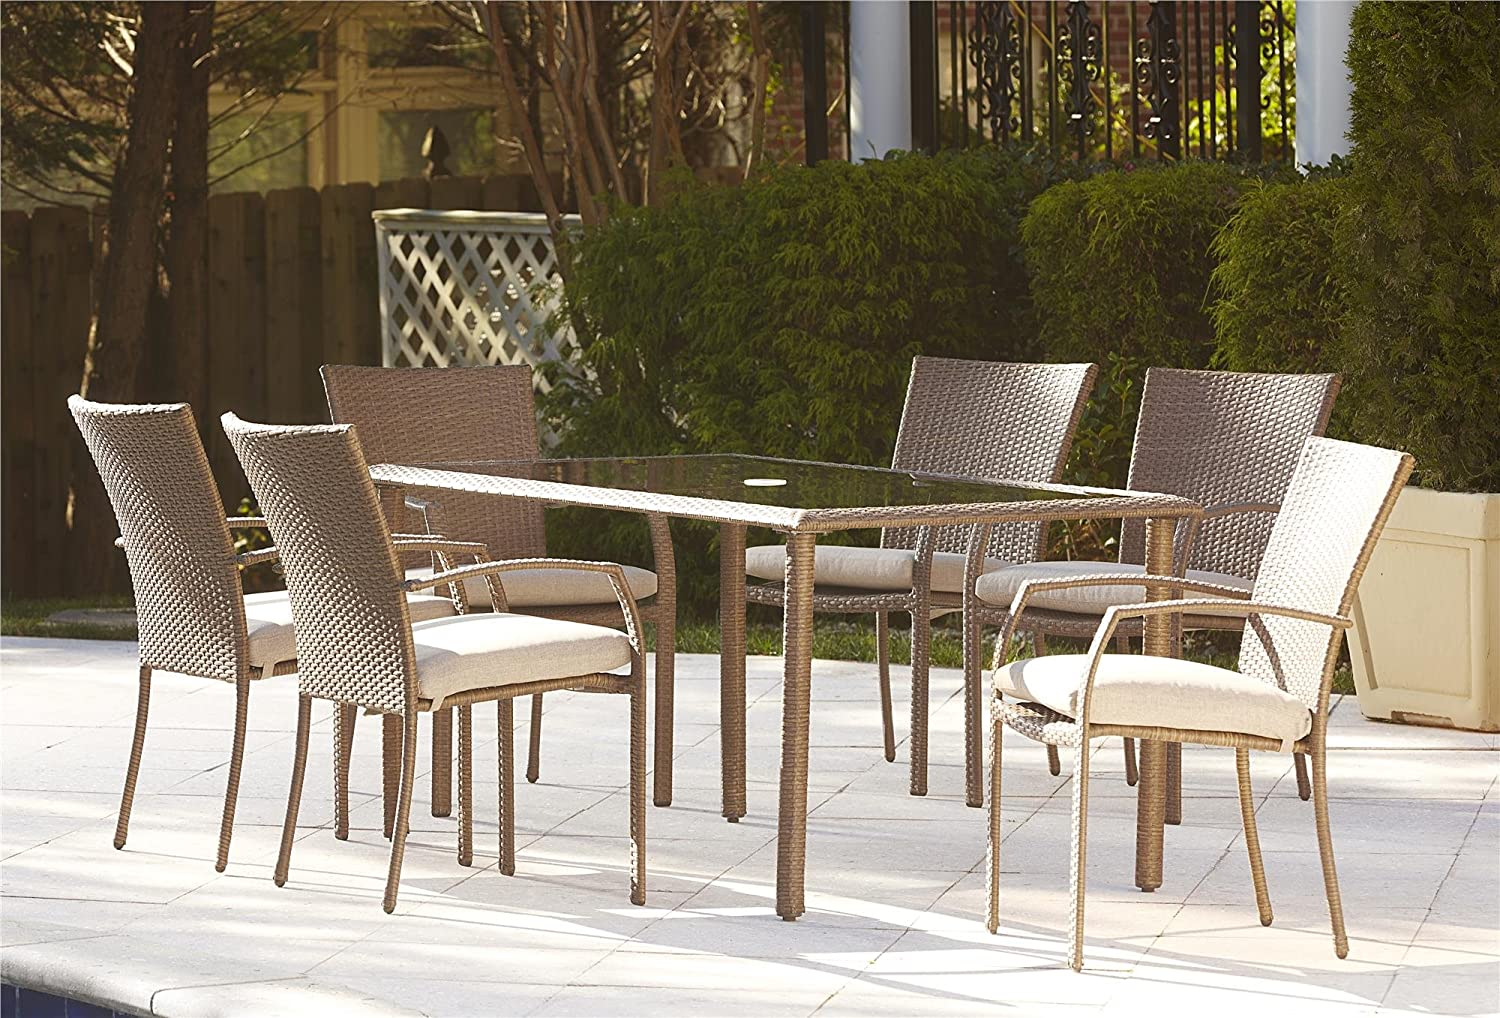 classico ow owlee set piece sf dining lee w af patio